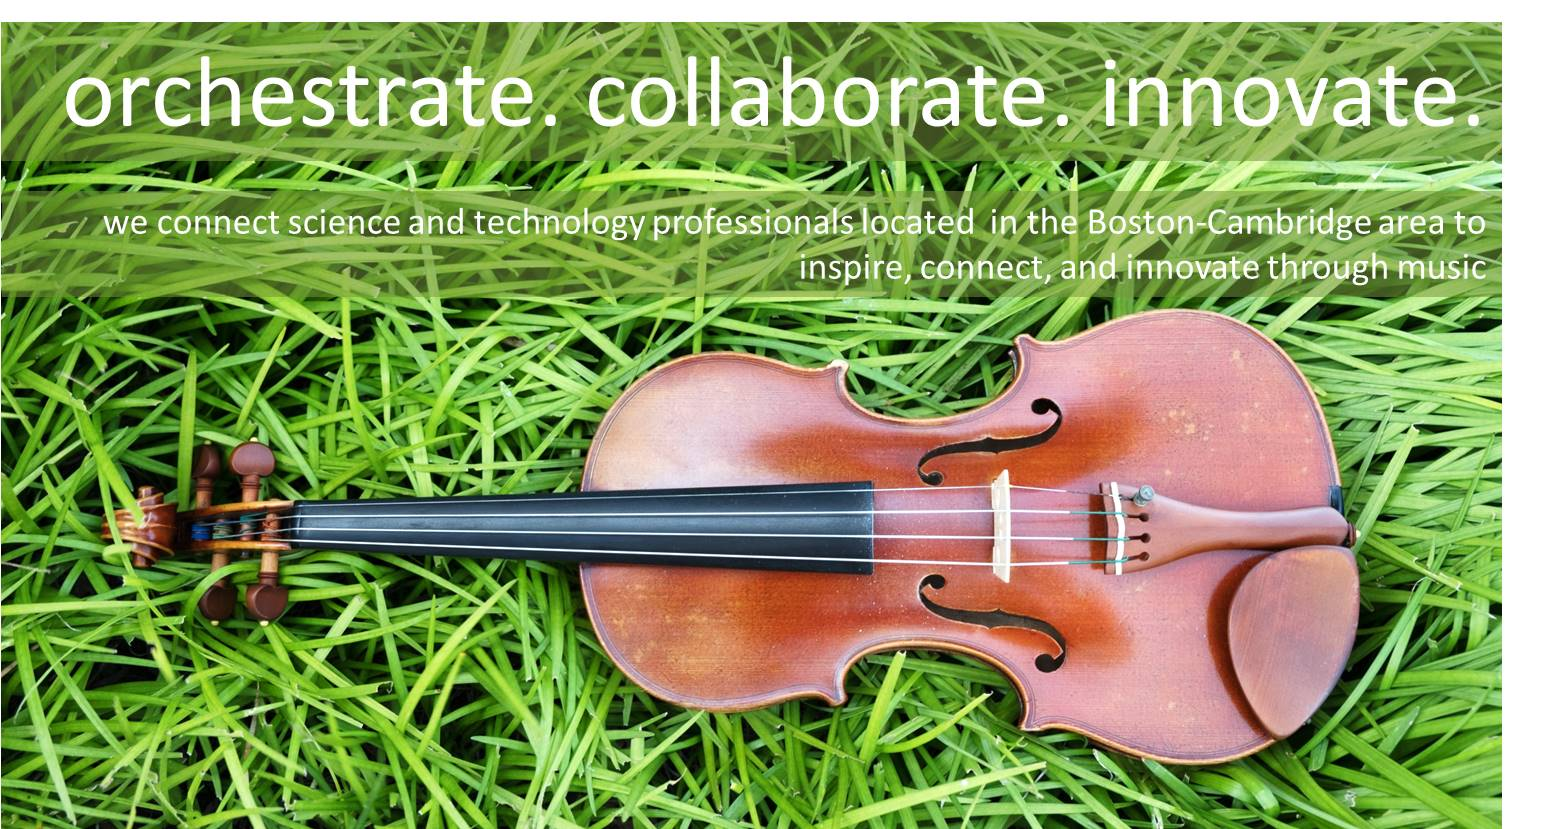 violin on grass tag line inverse.jpg